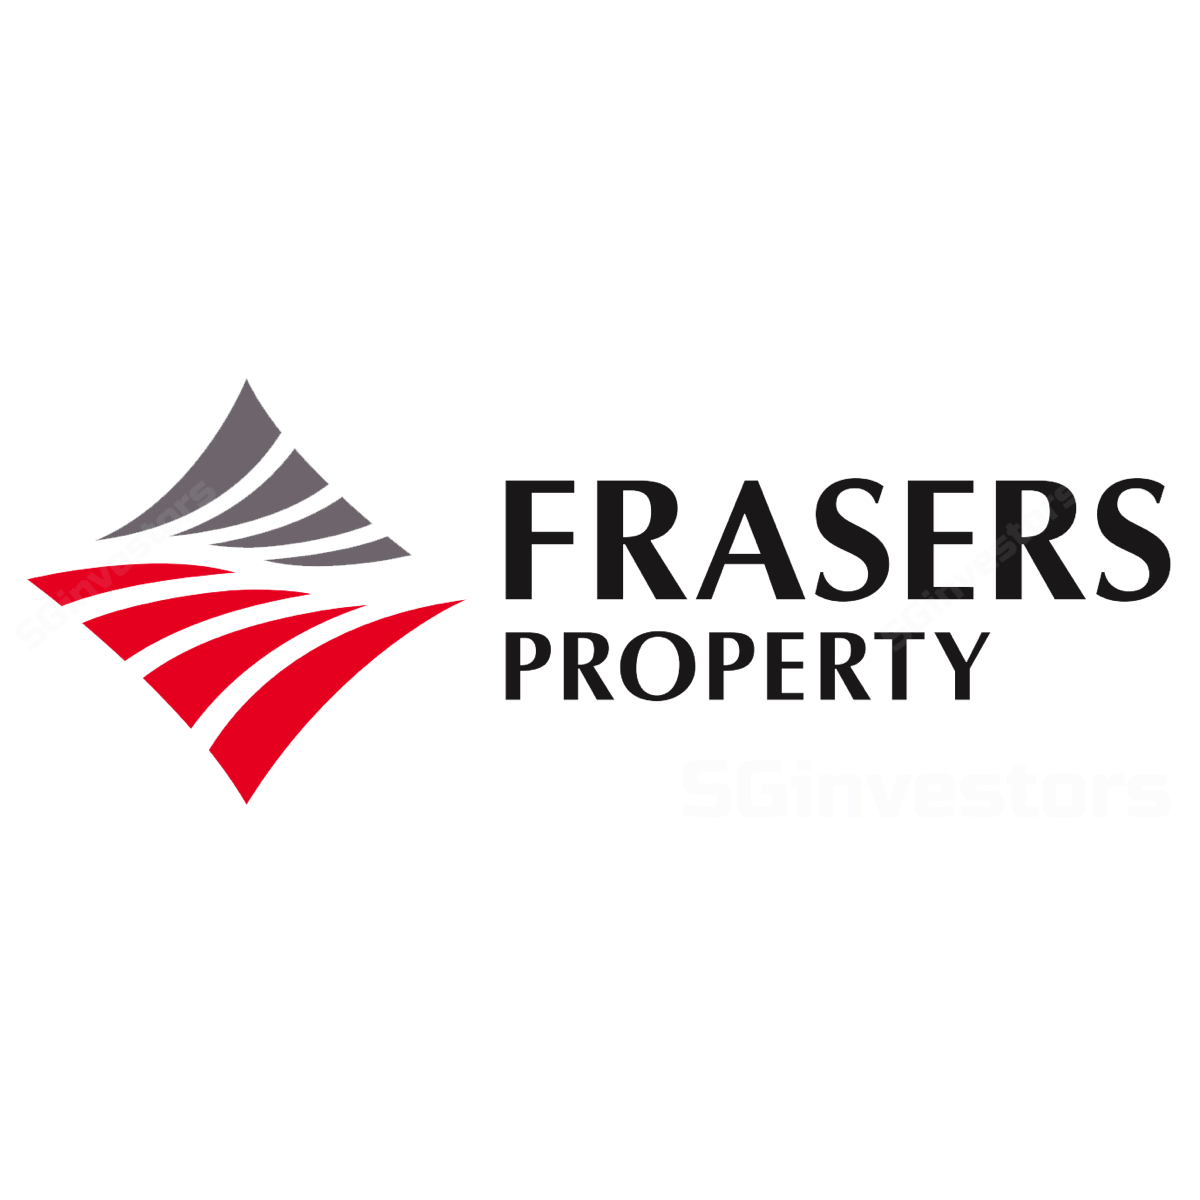 Frasers Property Limited - DBS Vickers 2018-07-06: Saved By Dividend Yield